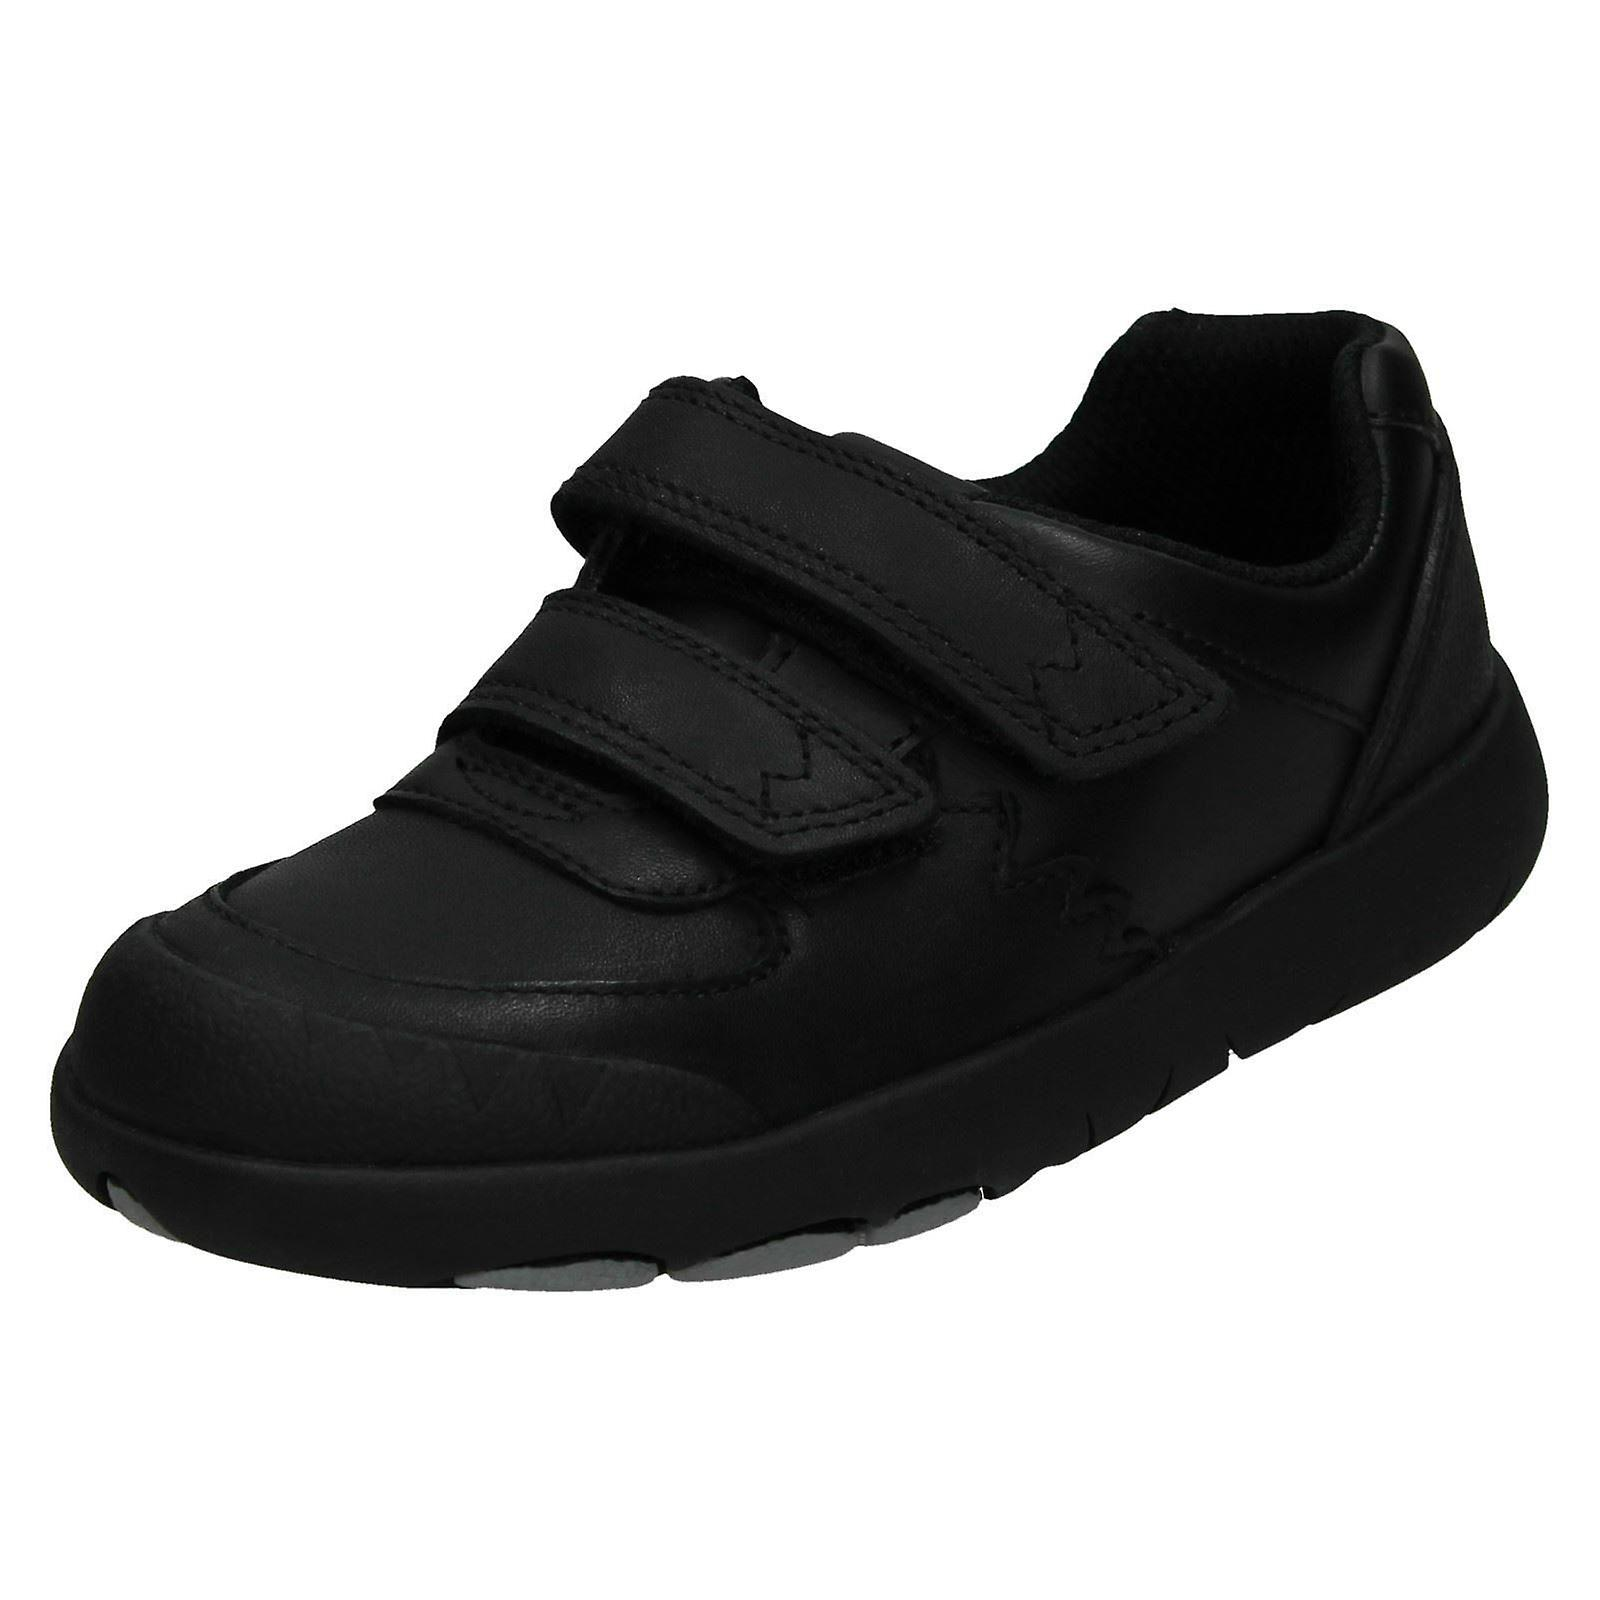 Boys Clarks Smart Formal School Shoes Rex Pace